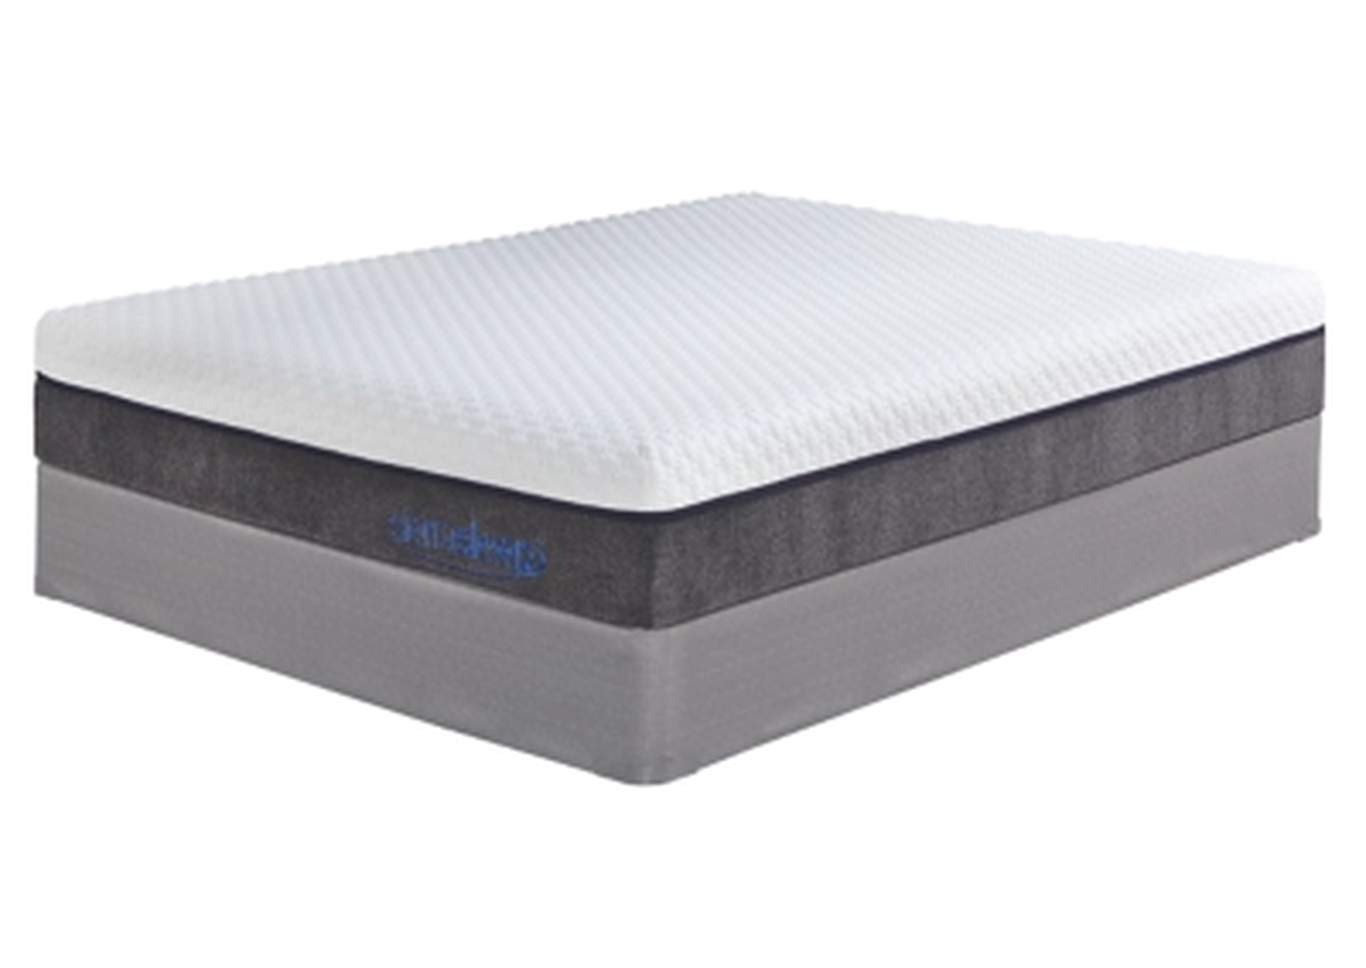 Mygel Hybrid 1100 King Mattress w/Foundation,Sierra Sleep